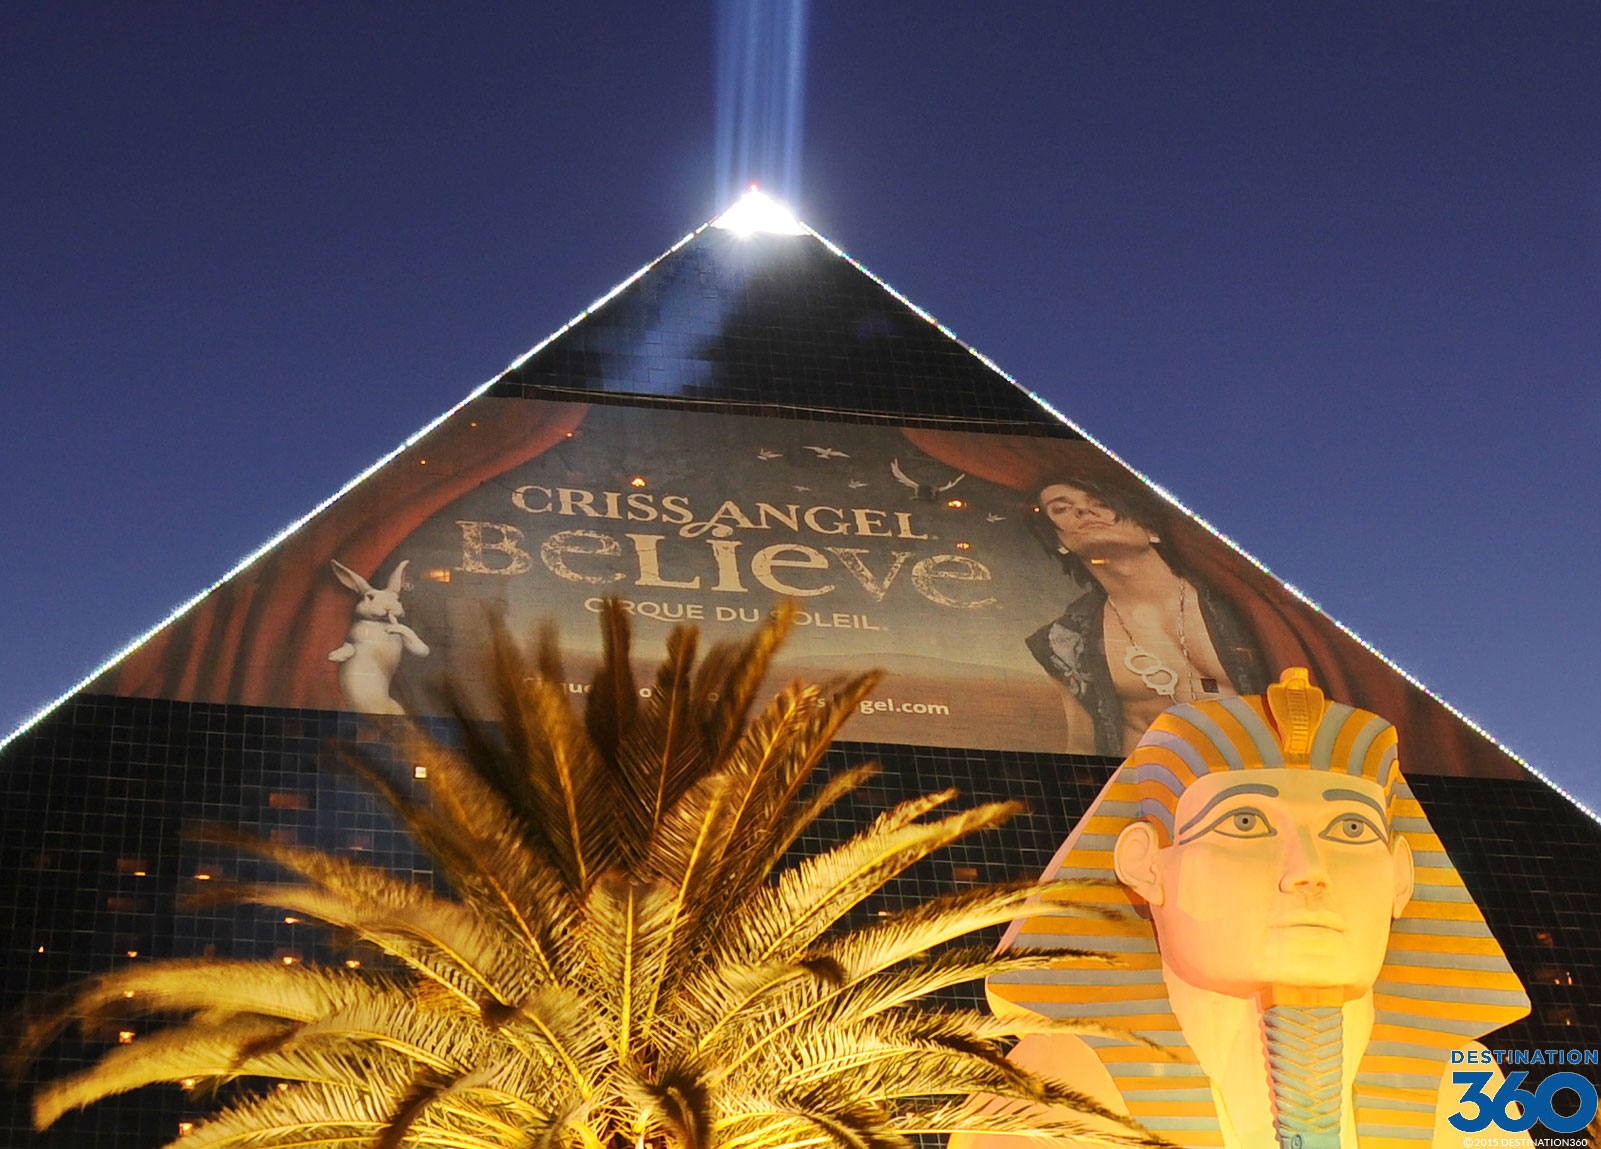 Criss Angel Show at the Luxor